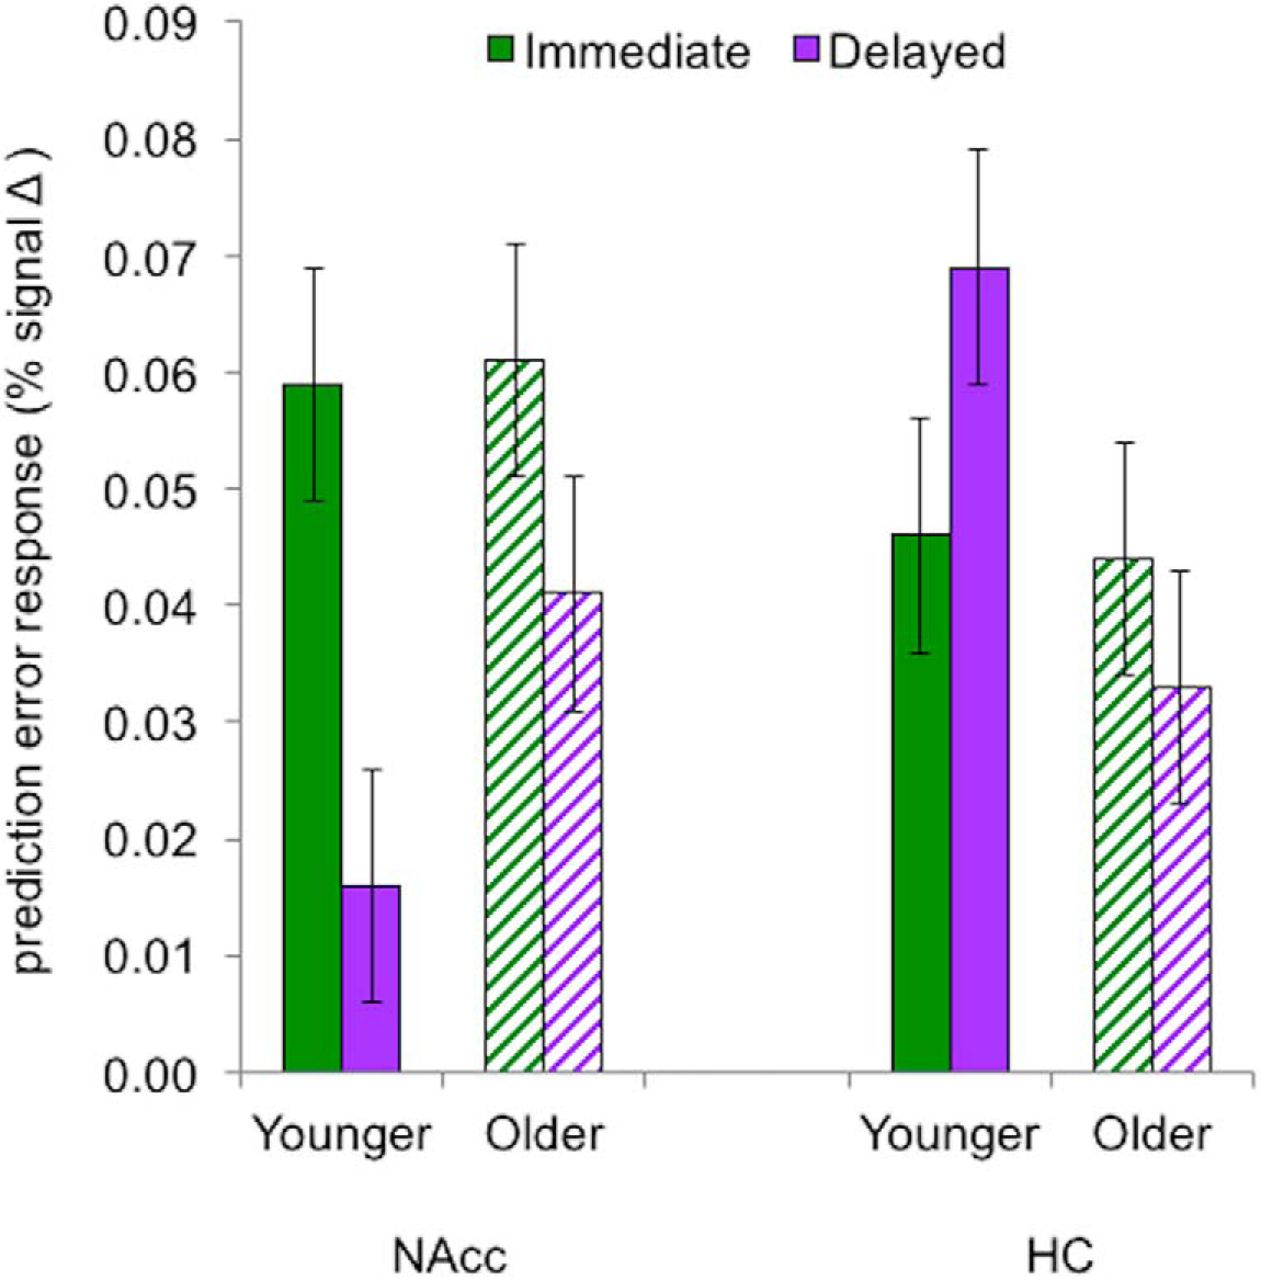 Feedback Based Learning In Aging Contributions And Trajectories Of